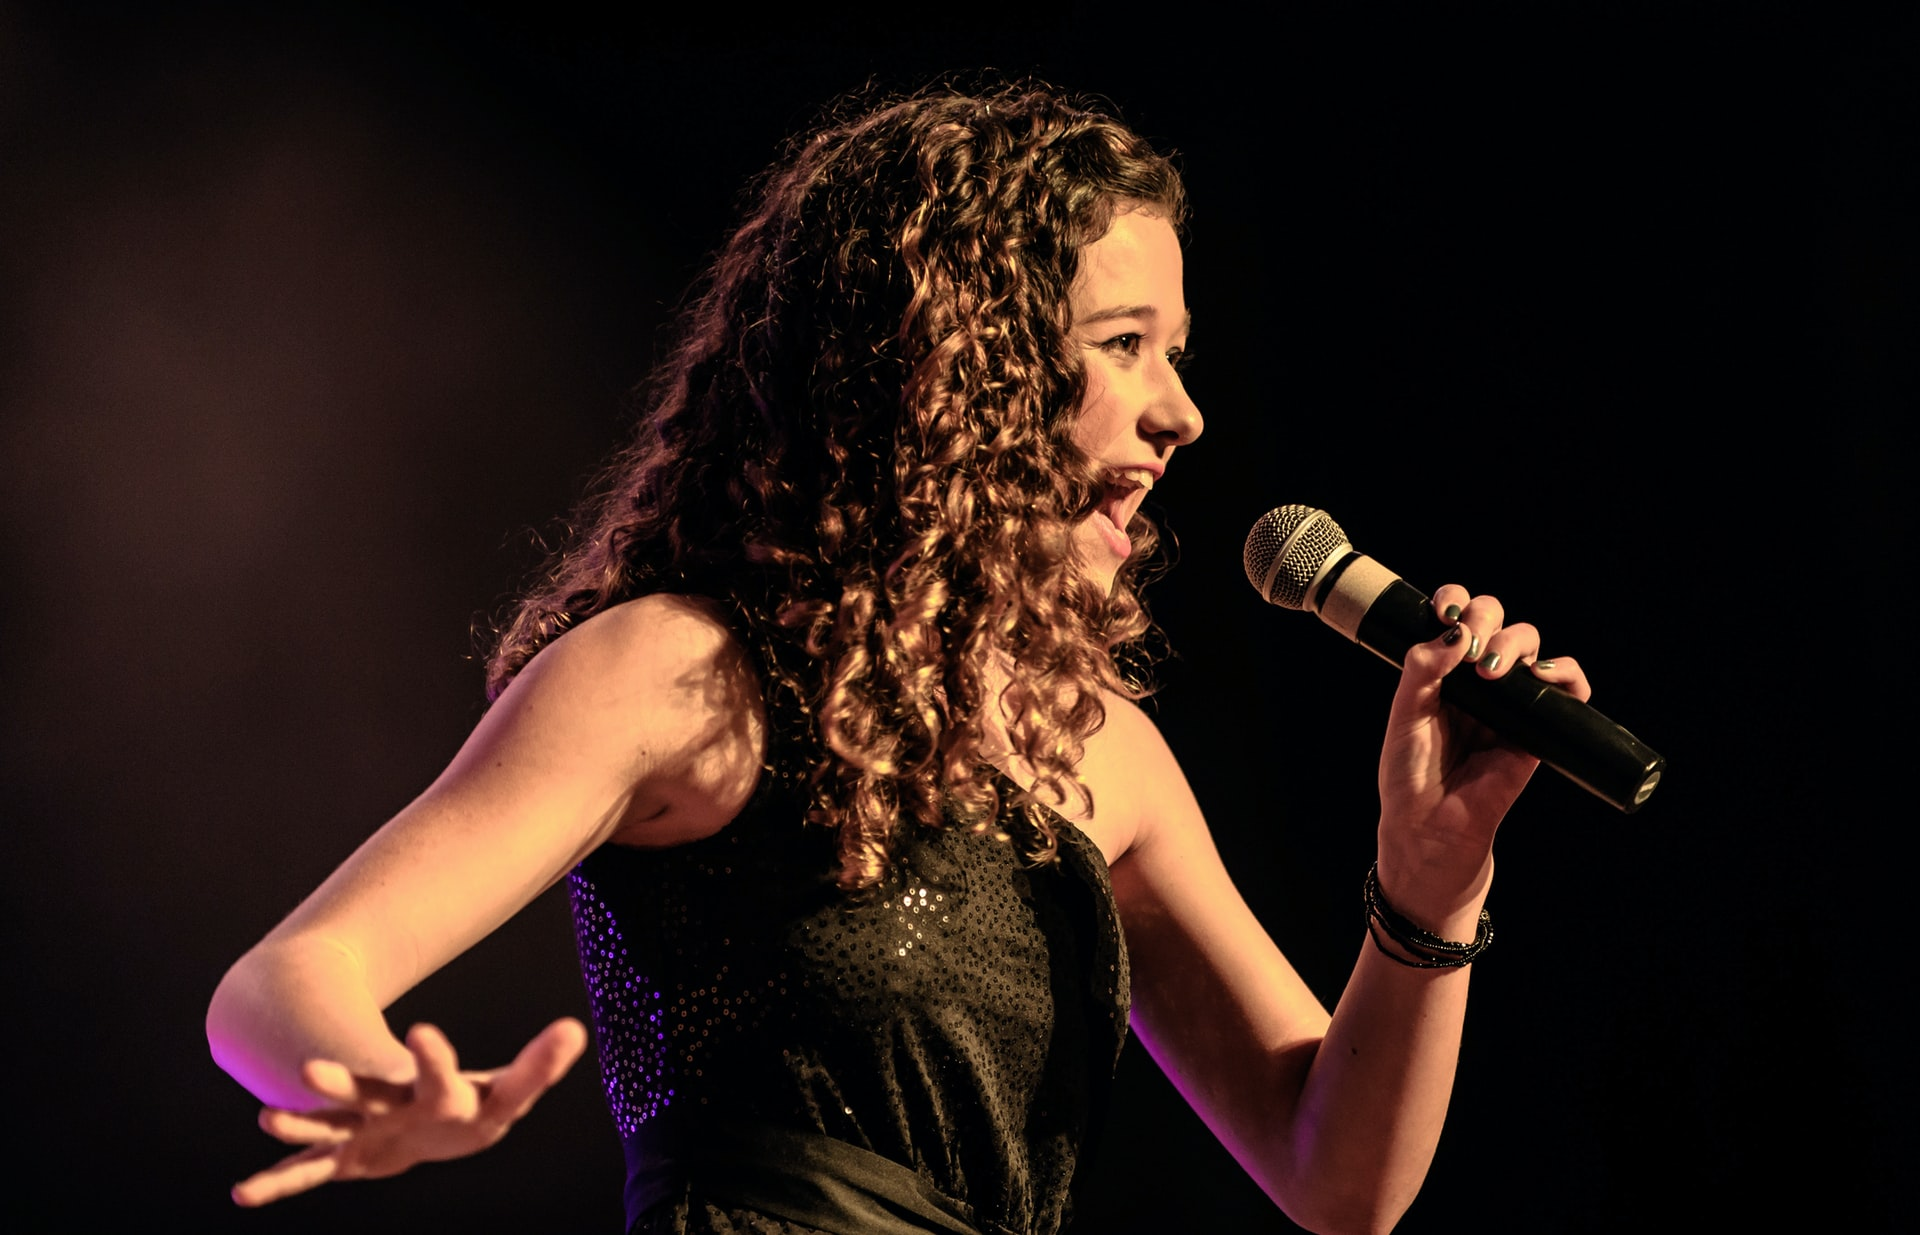 singer using a wireless microphone